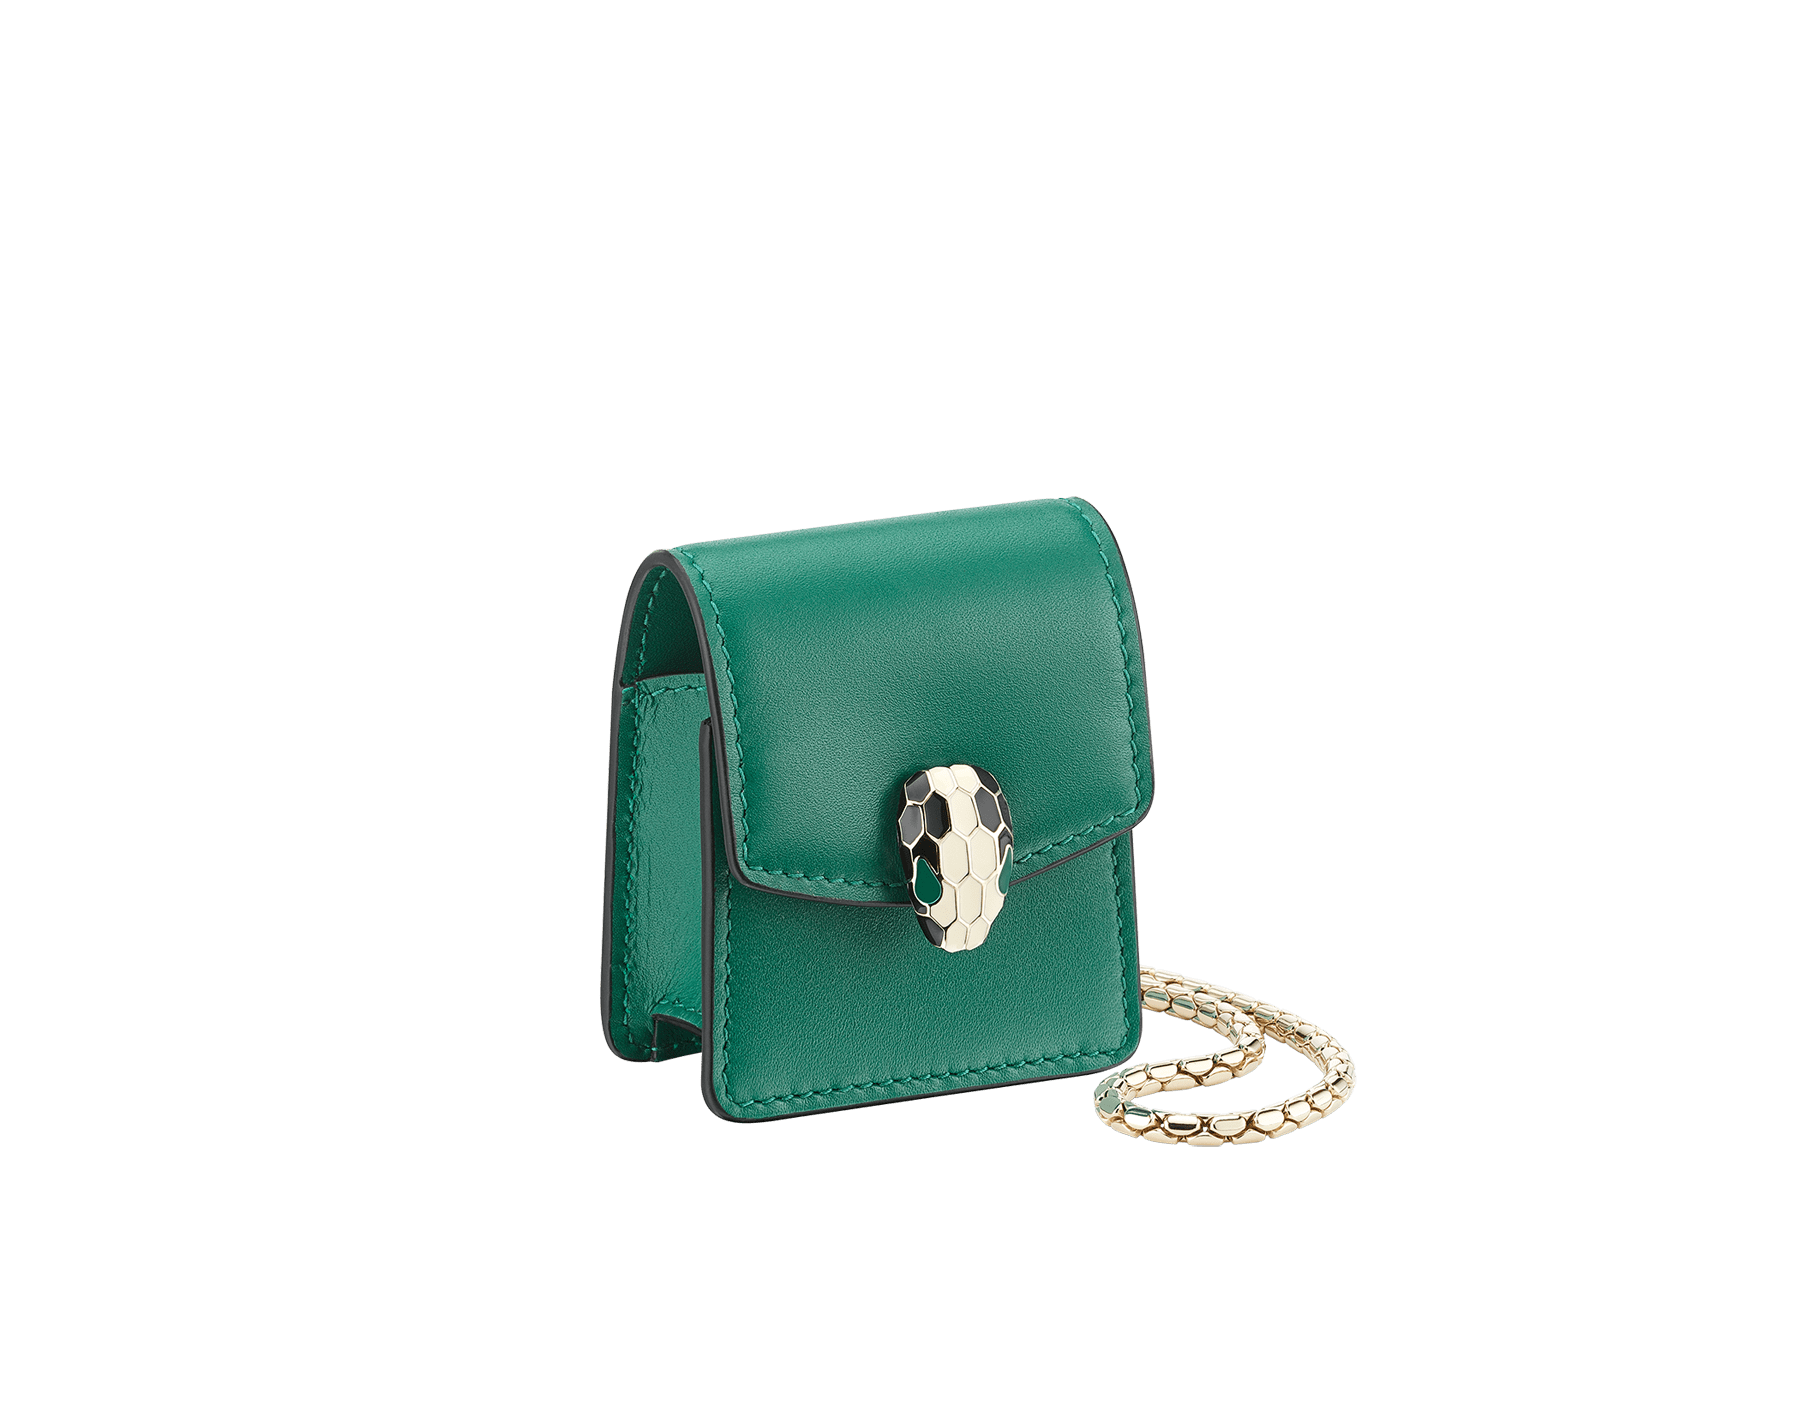 Serpenti Forever Earbuds holder in emerald green calf leather. Light gold plated brass Serpenti head closure in black and white enamel, with green enamel eyes. 289095 image 1